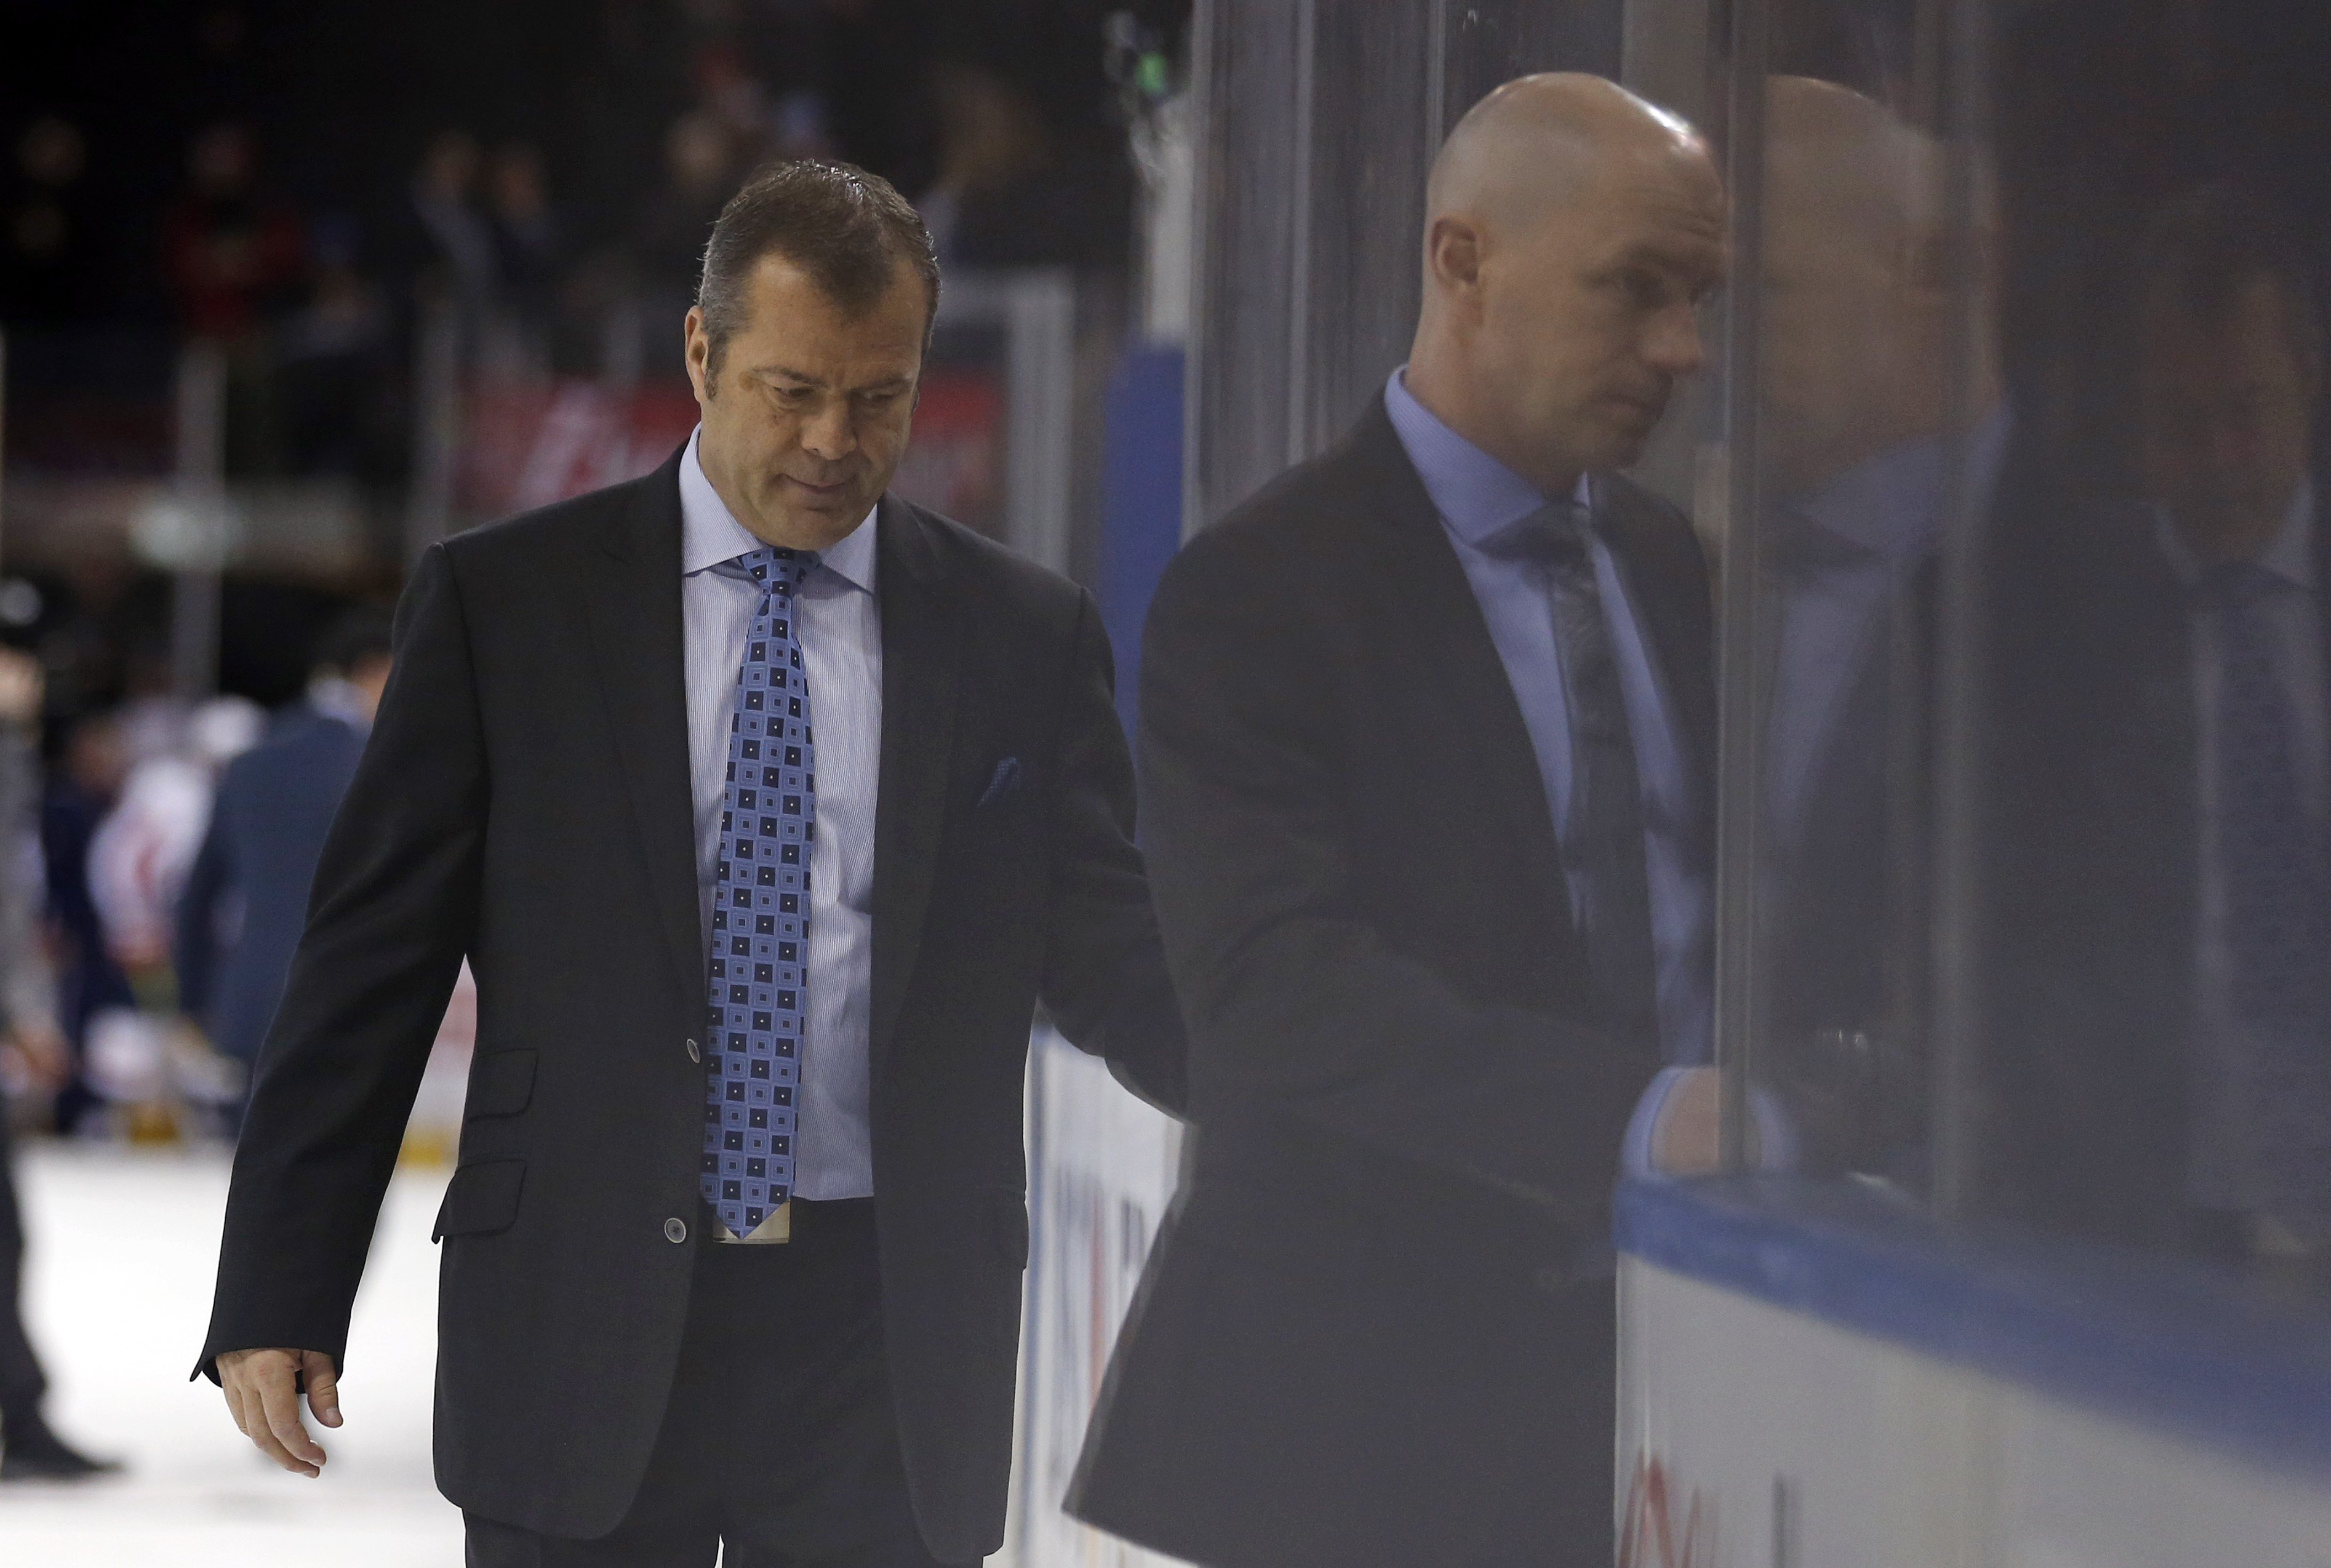 Mar 26, 2018; New York, NY, USA; New York Rangers head coach Alain Vigneault leaves the ice after losing to the Washington Capitals at Madison Square Garden. Mandatory Credit: Adam Hunger-USA TODAY Sports